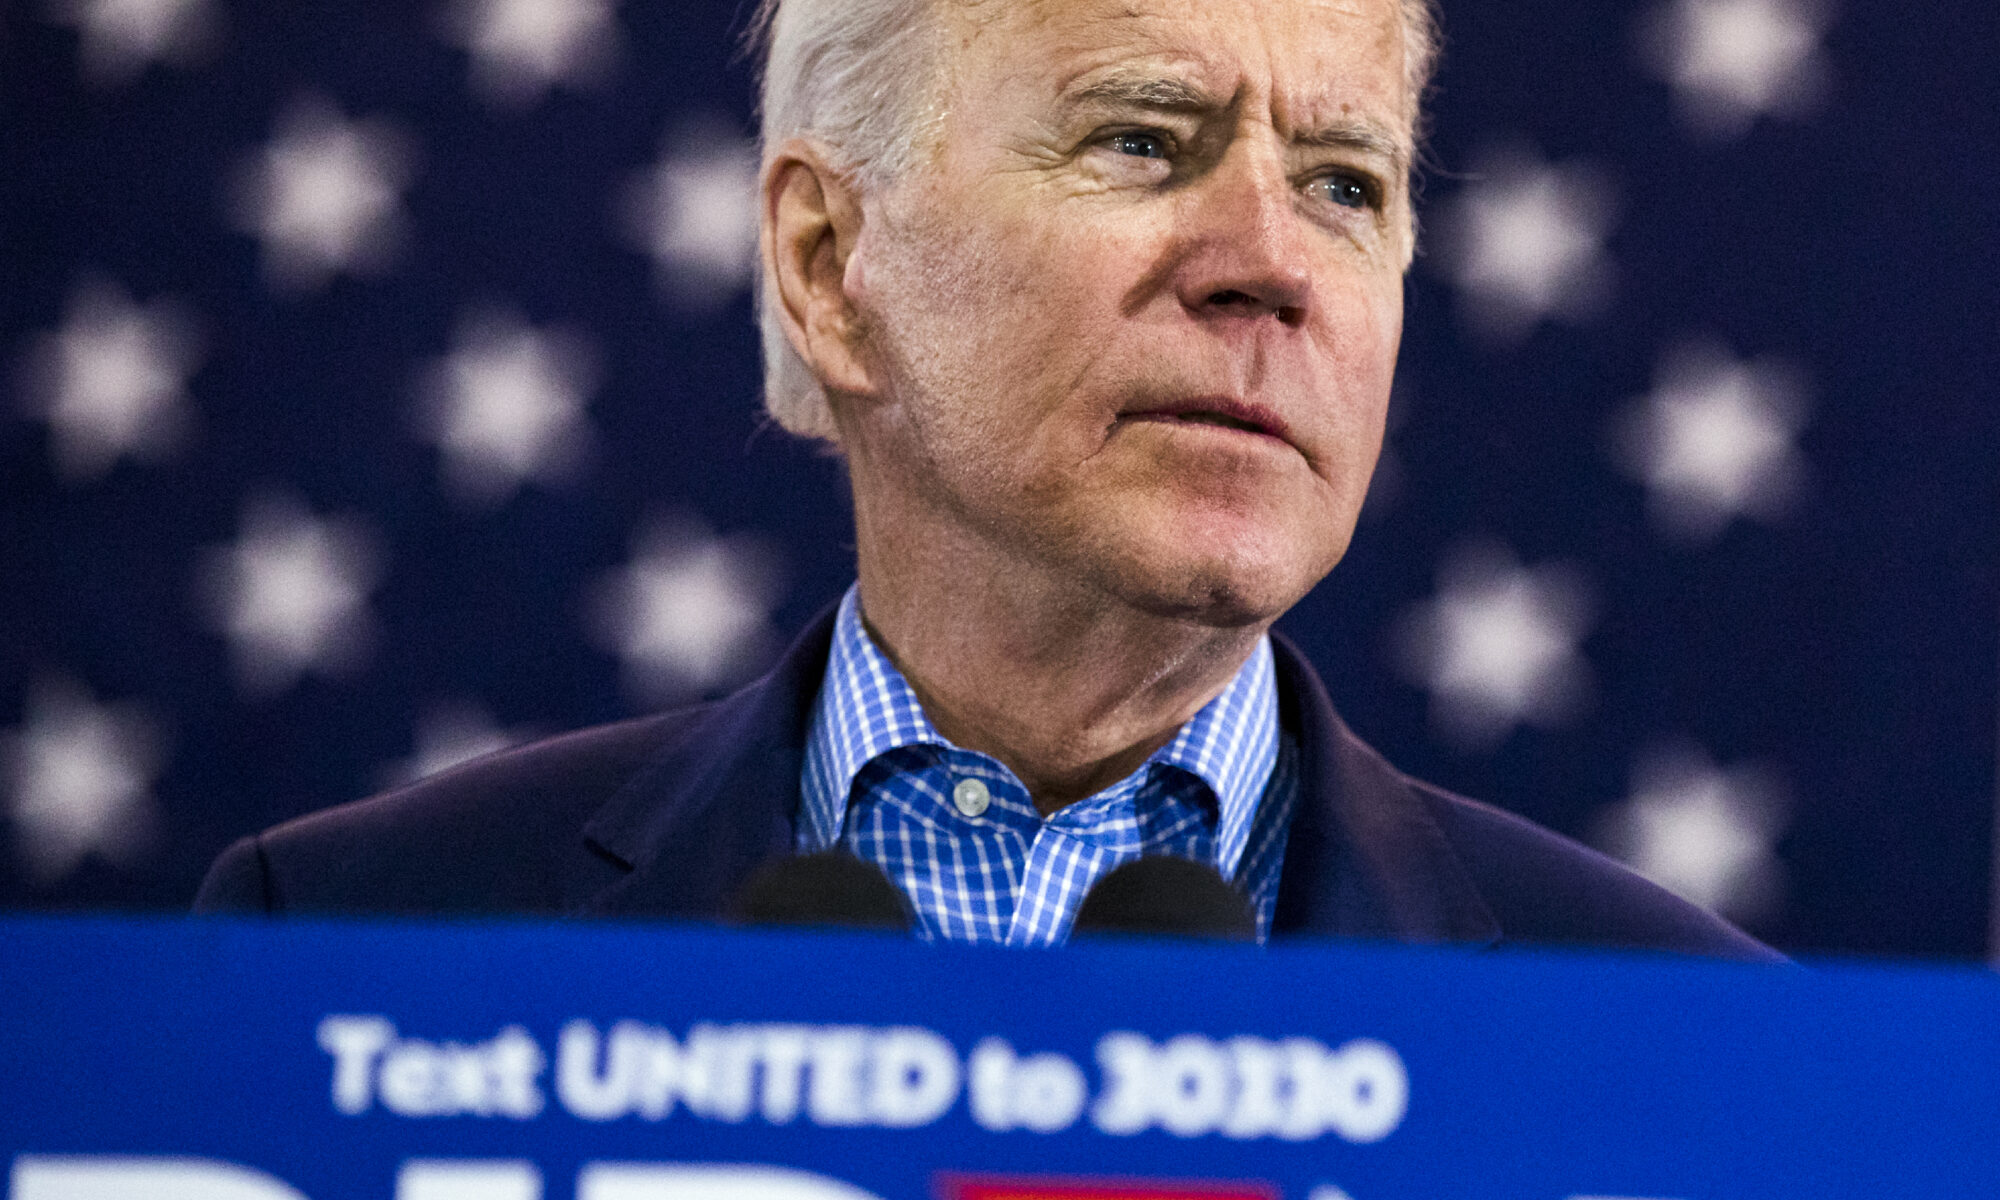 As presidential matchup pivots toward general, Biden campaign makes top-level hires in Nevada